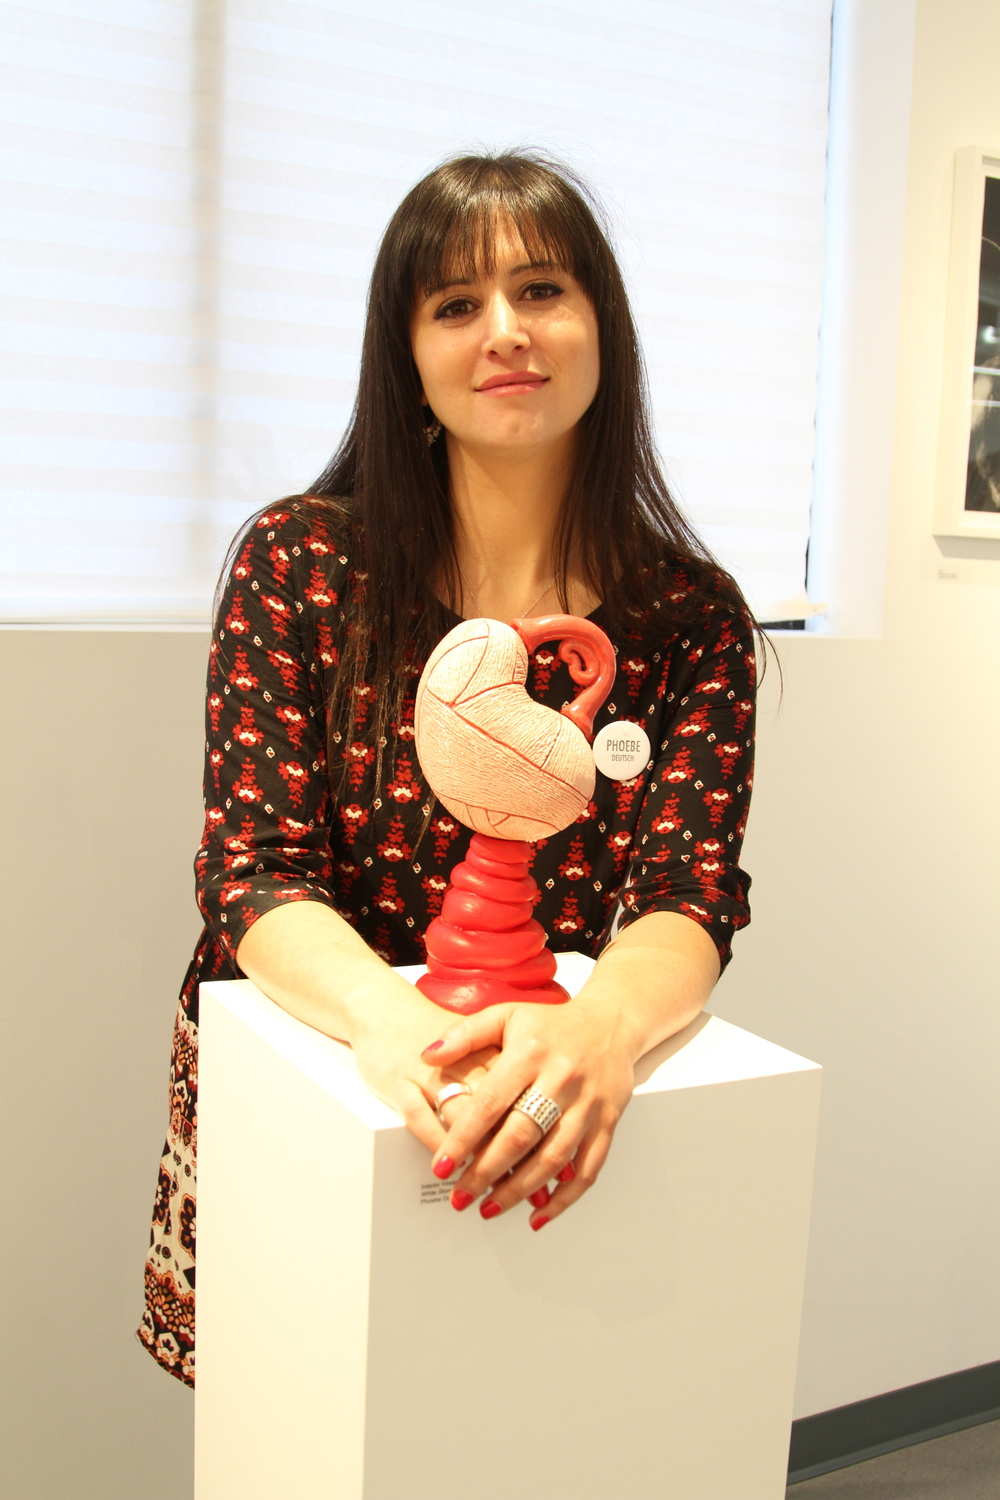 Phoebe Deutsch with her sculpture